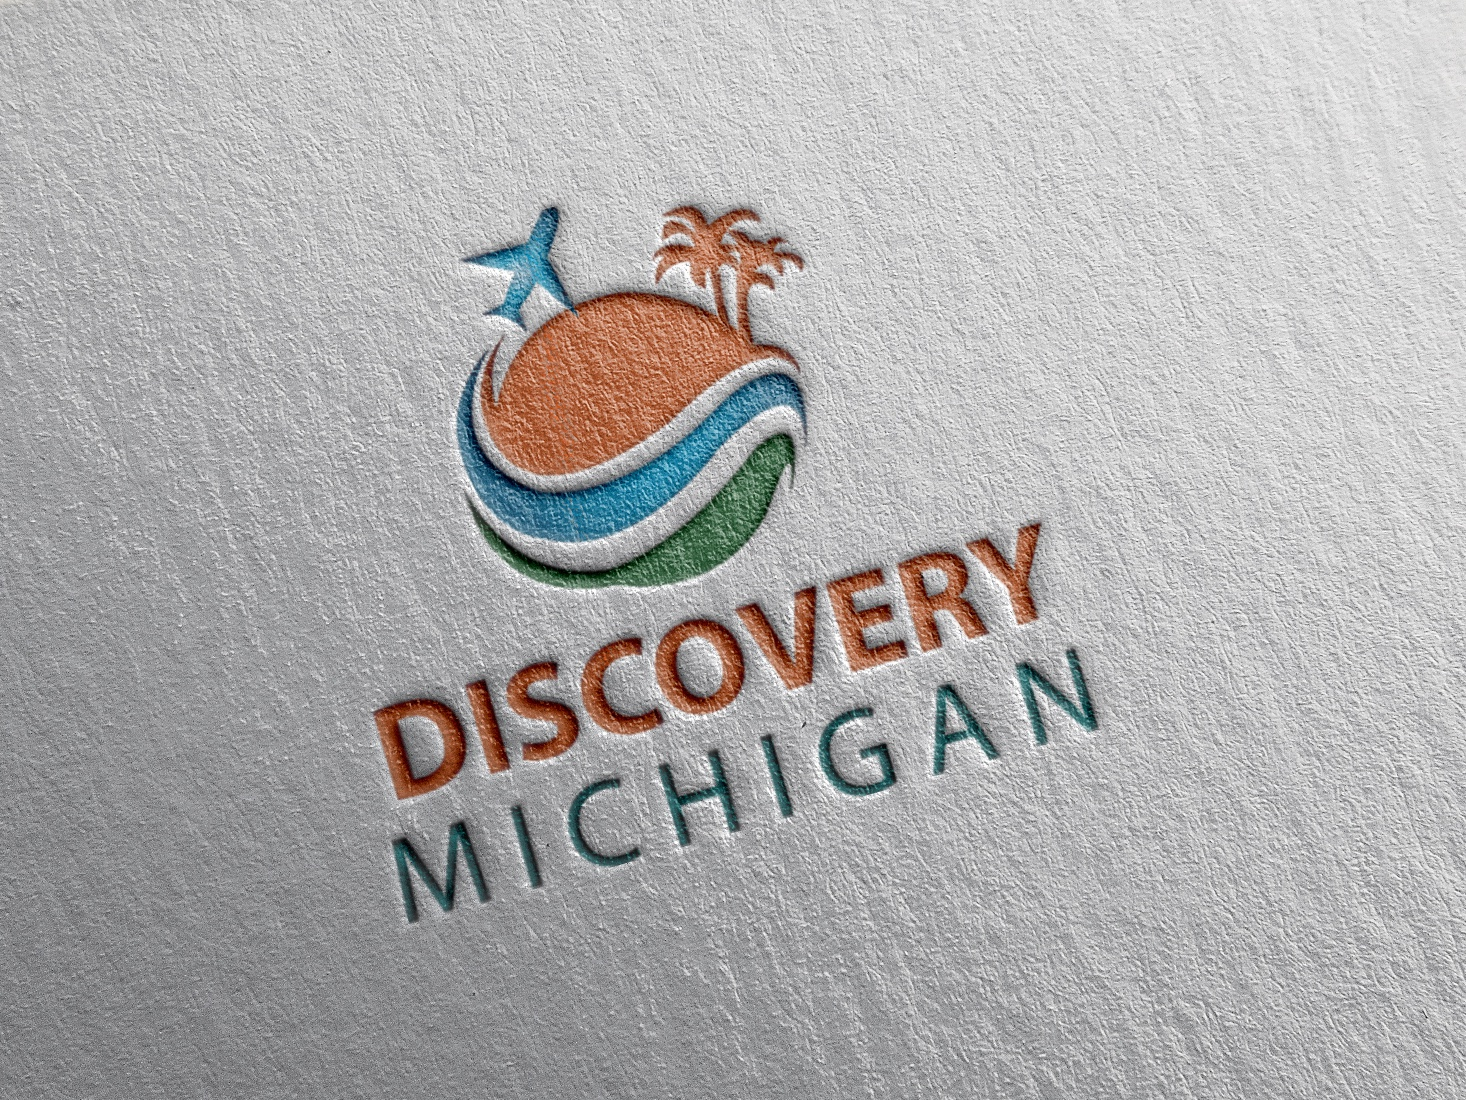 Discovery Michagn illustration company brand logo airline travel tour logo travel logo